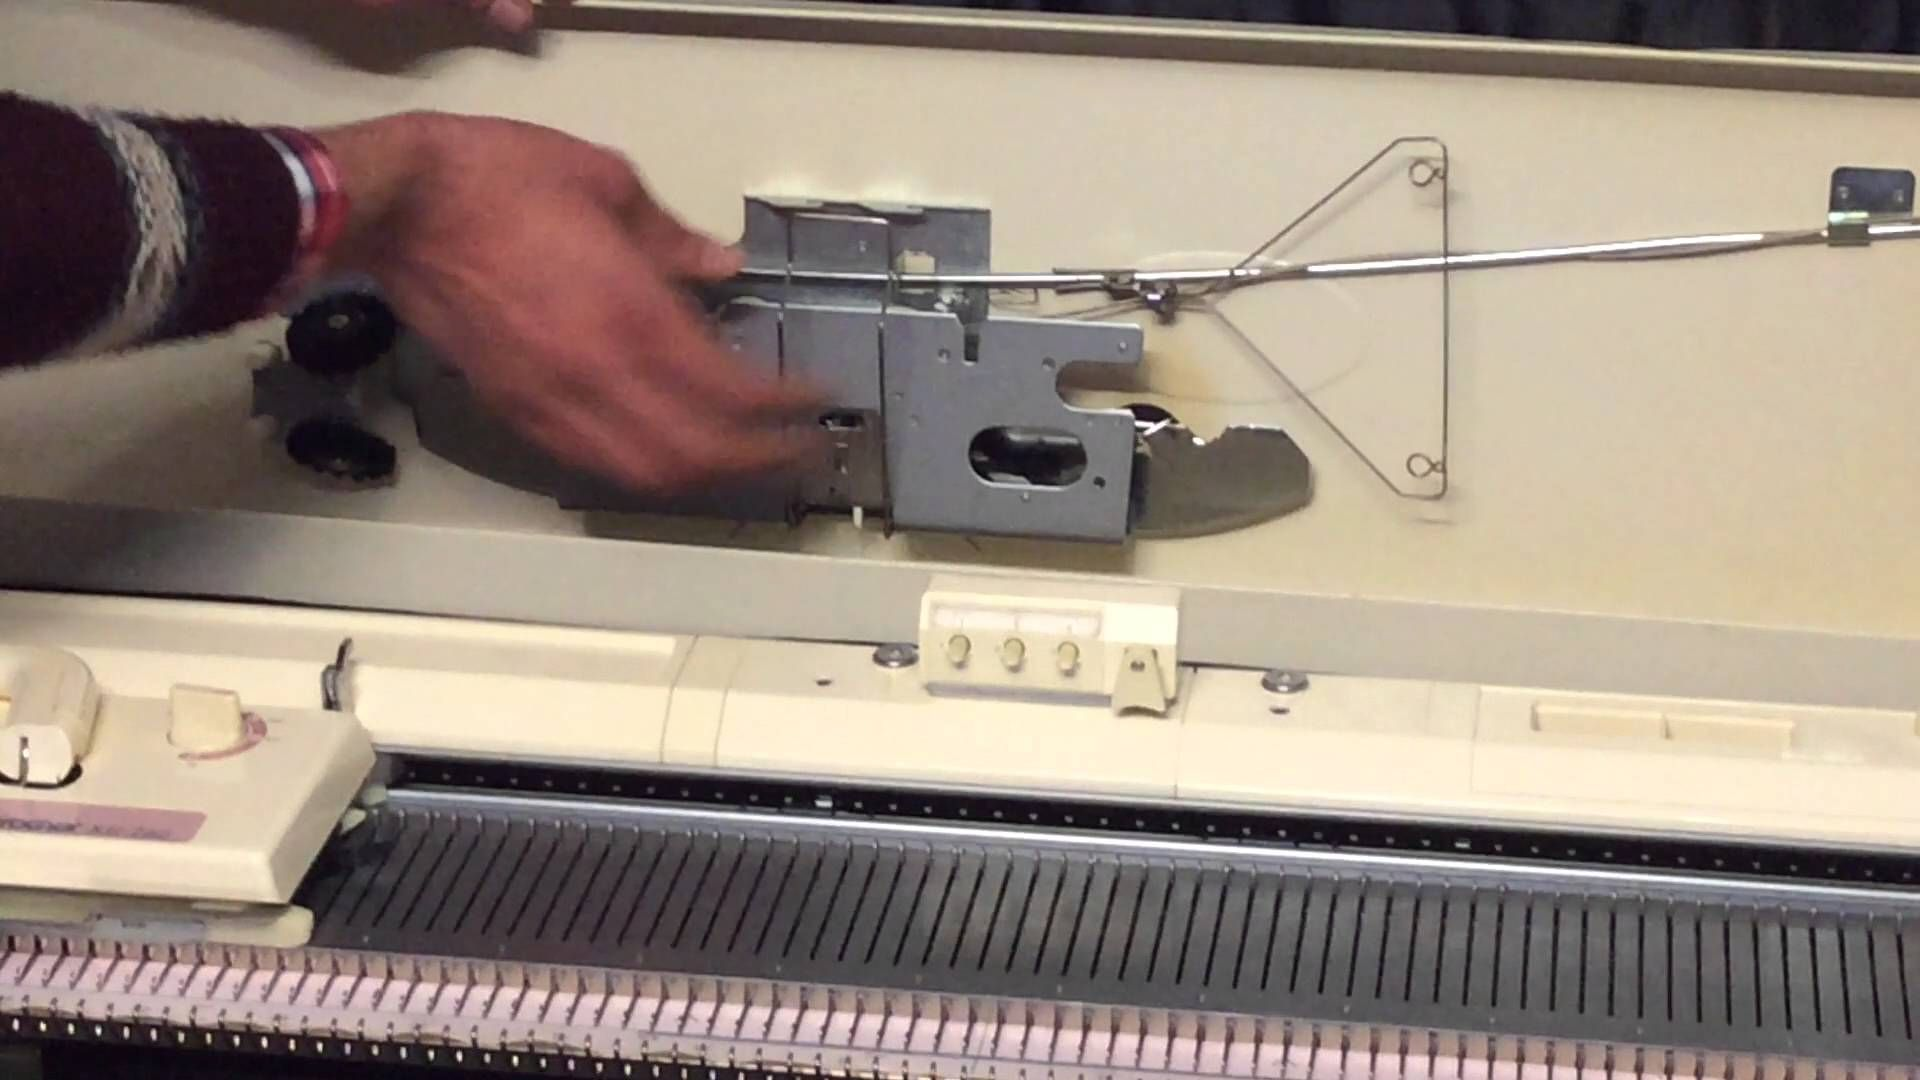 Welcome everyone this video is all about how to setup a brother welcome everyone this video is all about how to setup a brother chunky kh 260 knitting machine the elvis presley of brother knitting machines lol bankloansurffo Images